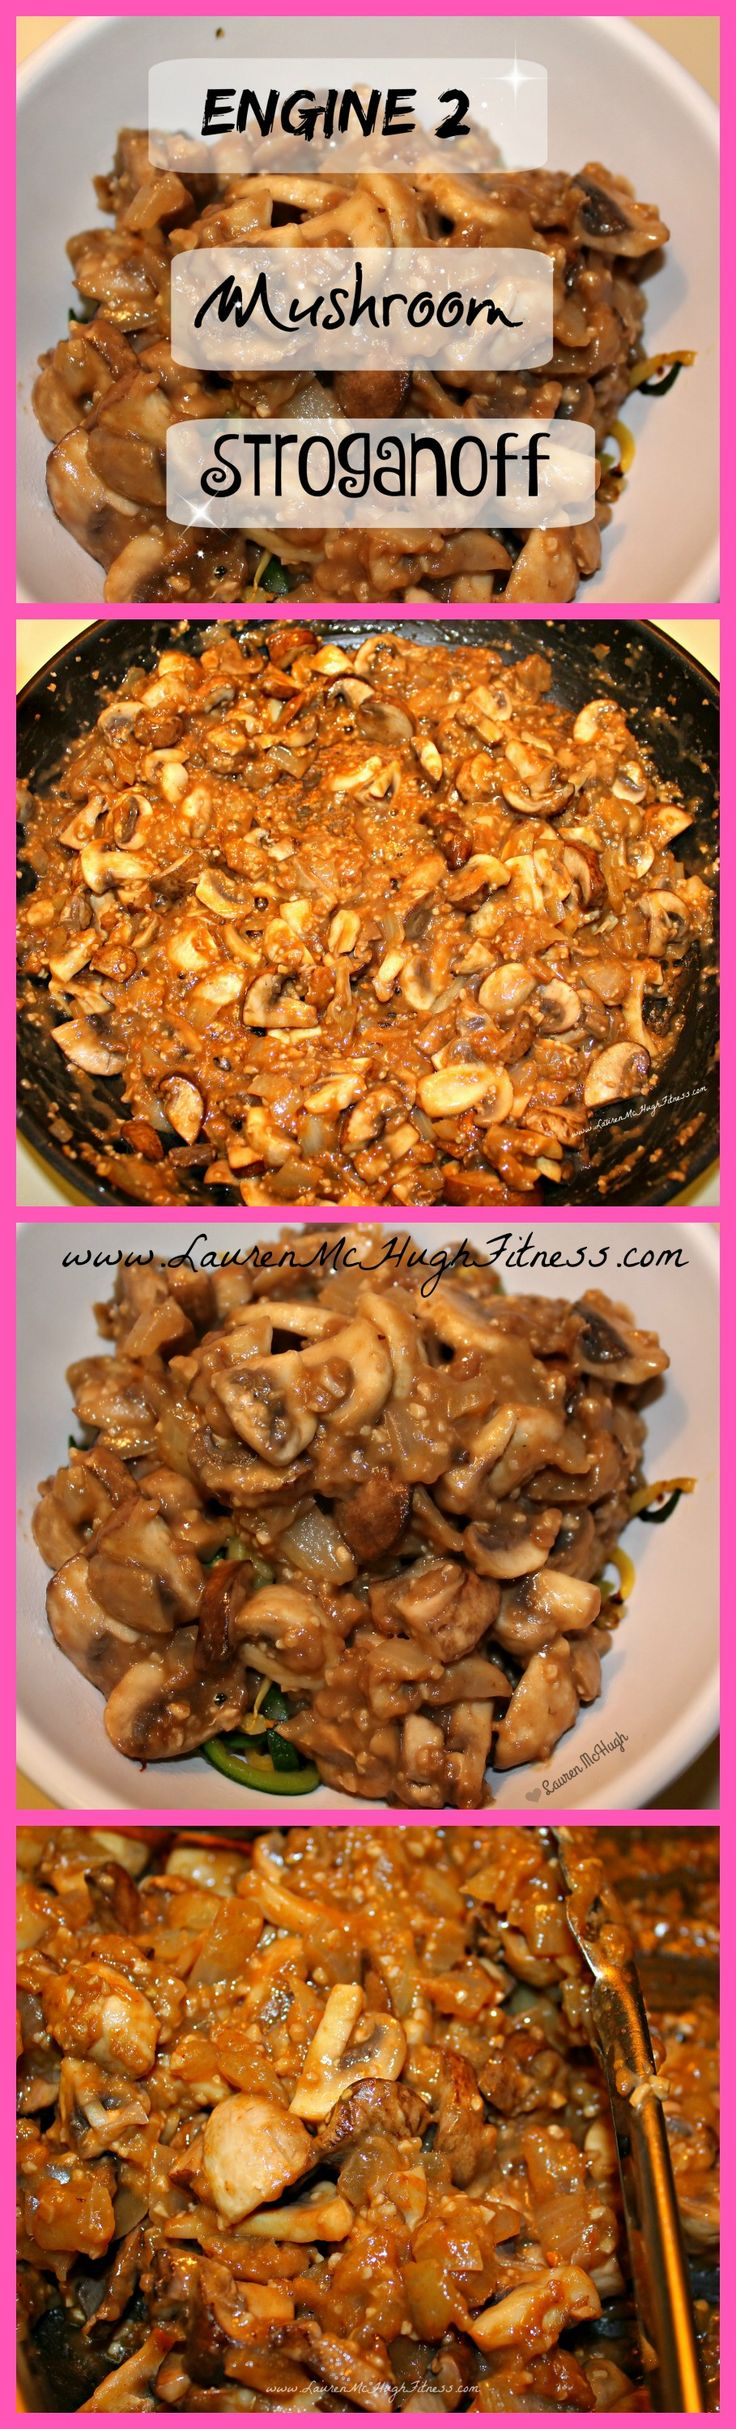 Engine 2 Diet Mushroom Stroganoff! :) I've been looking for more oil-free yummy veggie-filled recipes, so I decided to go with this Engine 2 Mushroom Stroganoff. I found it on Engine2Diet.com under the Dinner recipes. I modified it a little bit, so CLICK the pin to see the full recipe, and REPIN if you want to try this! :) #Engine2Diet #OilFree #DairyFree #Vegan